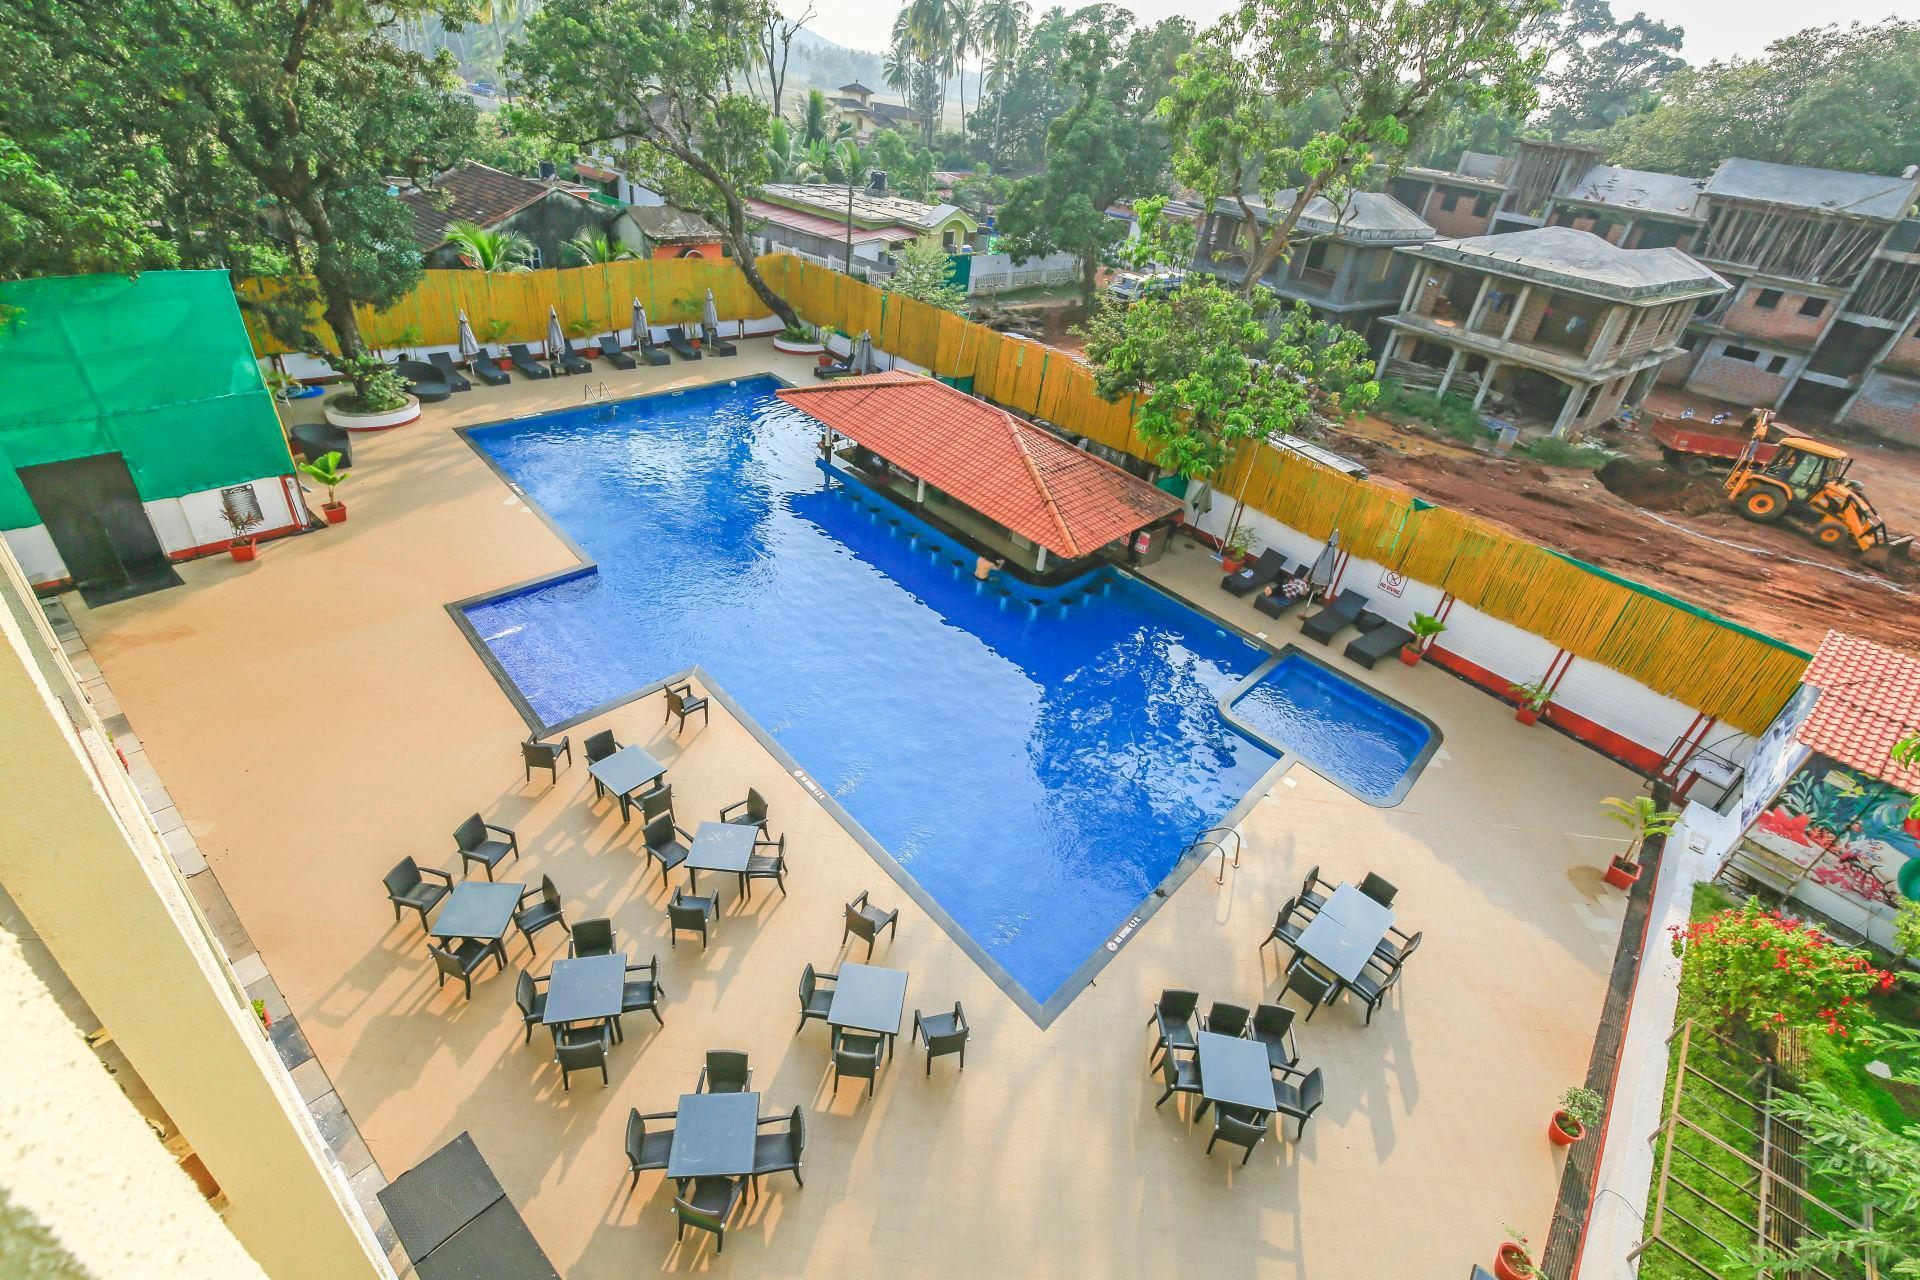 2 Luxurious Apartments With A Pool  73555